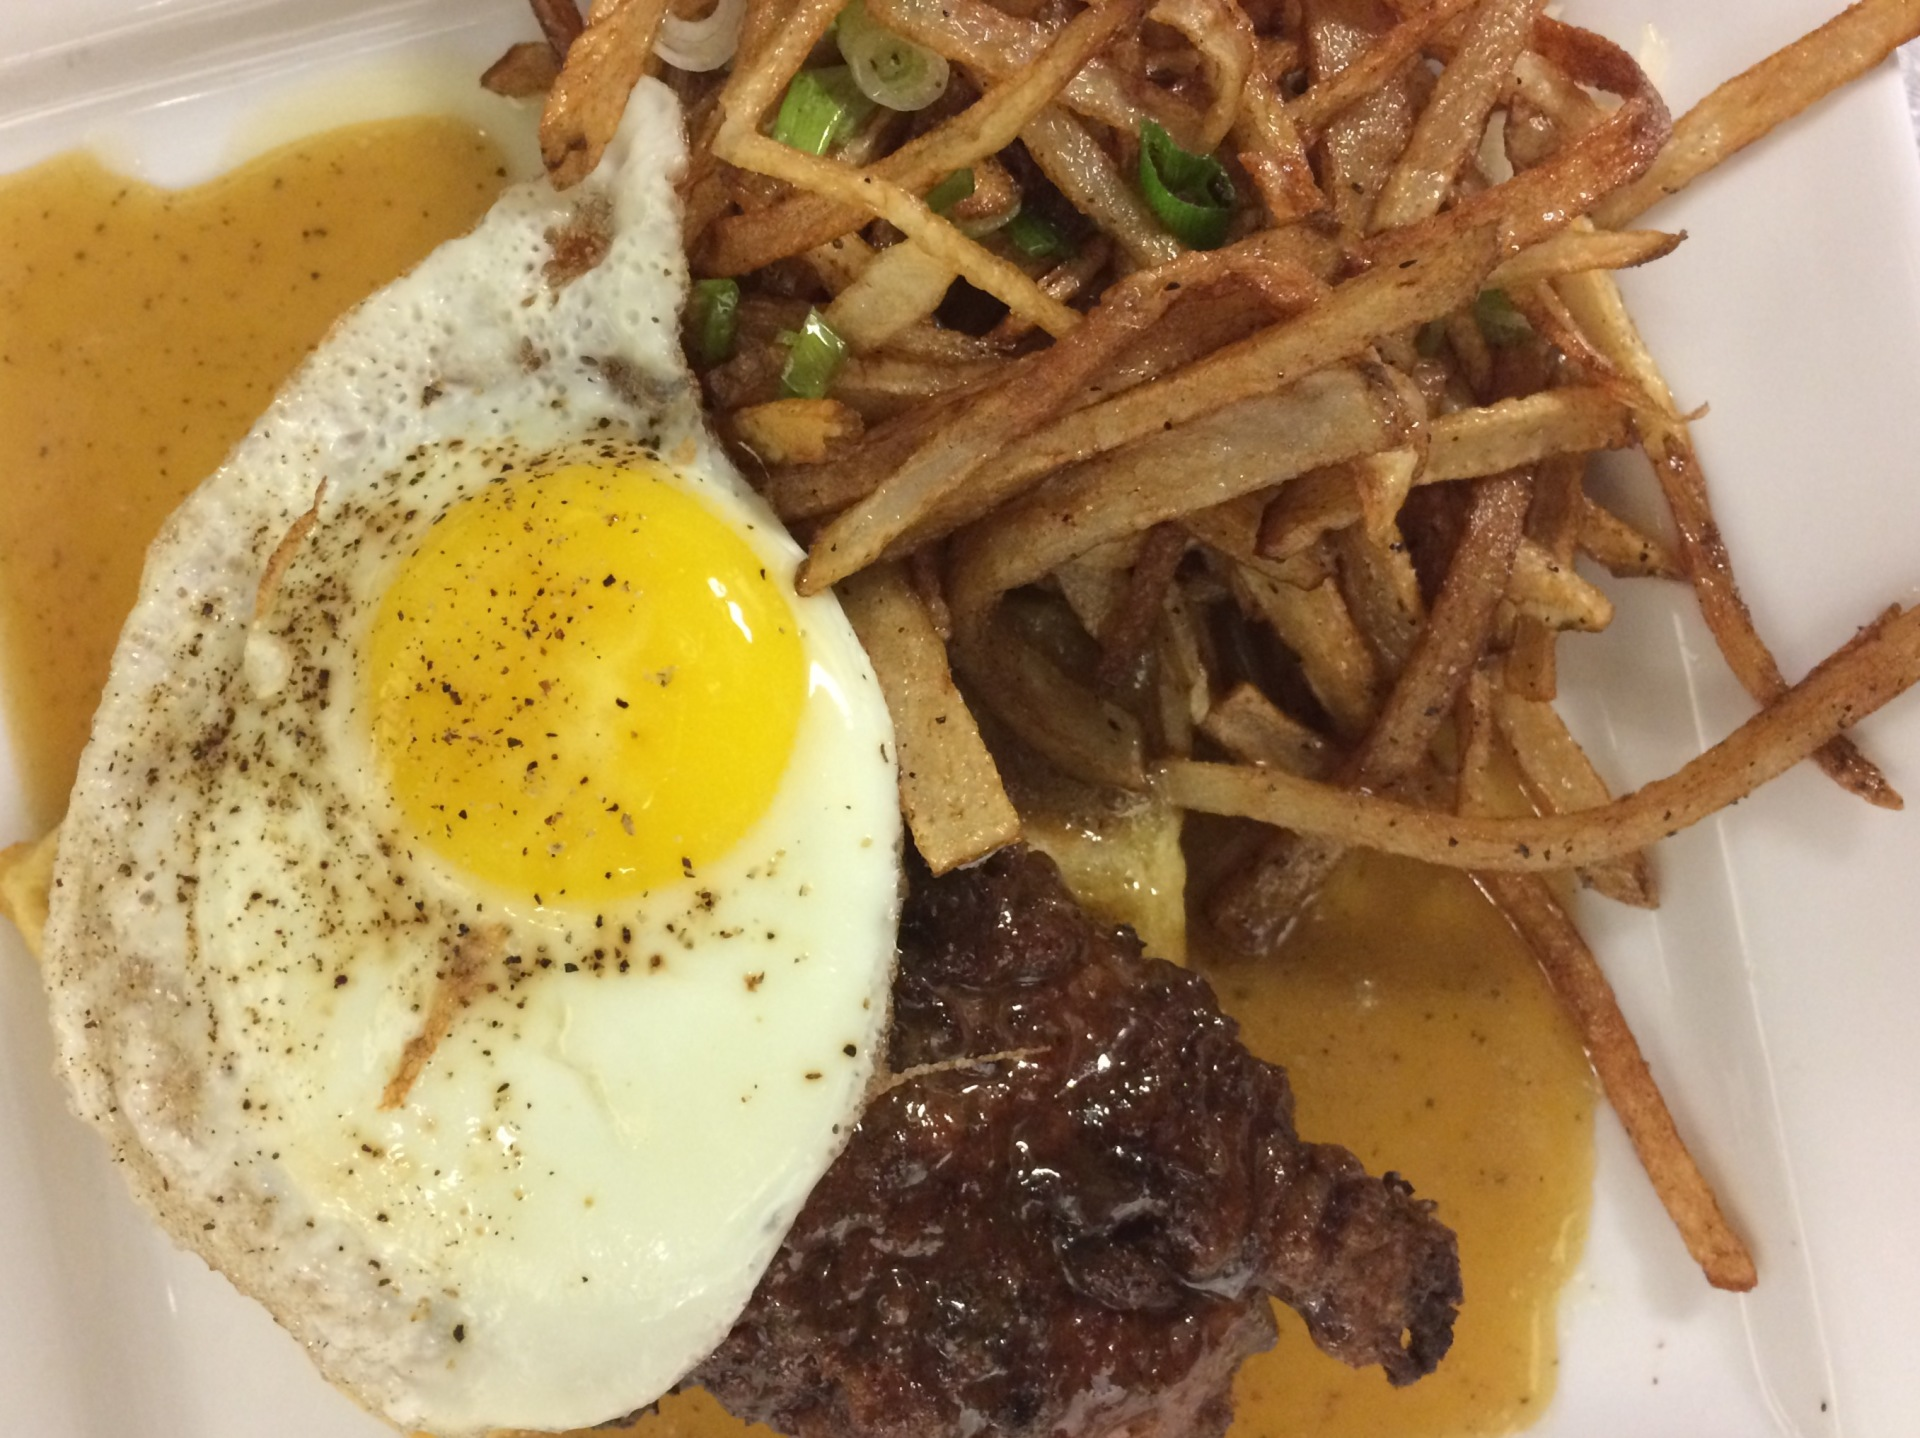 supper, duck, waffles, chicken and waffles, fries, egg, St. John's, everyday